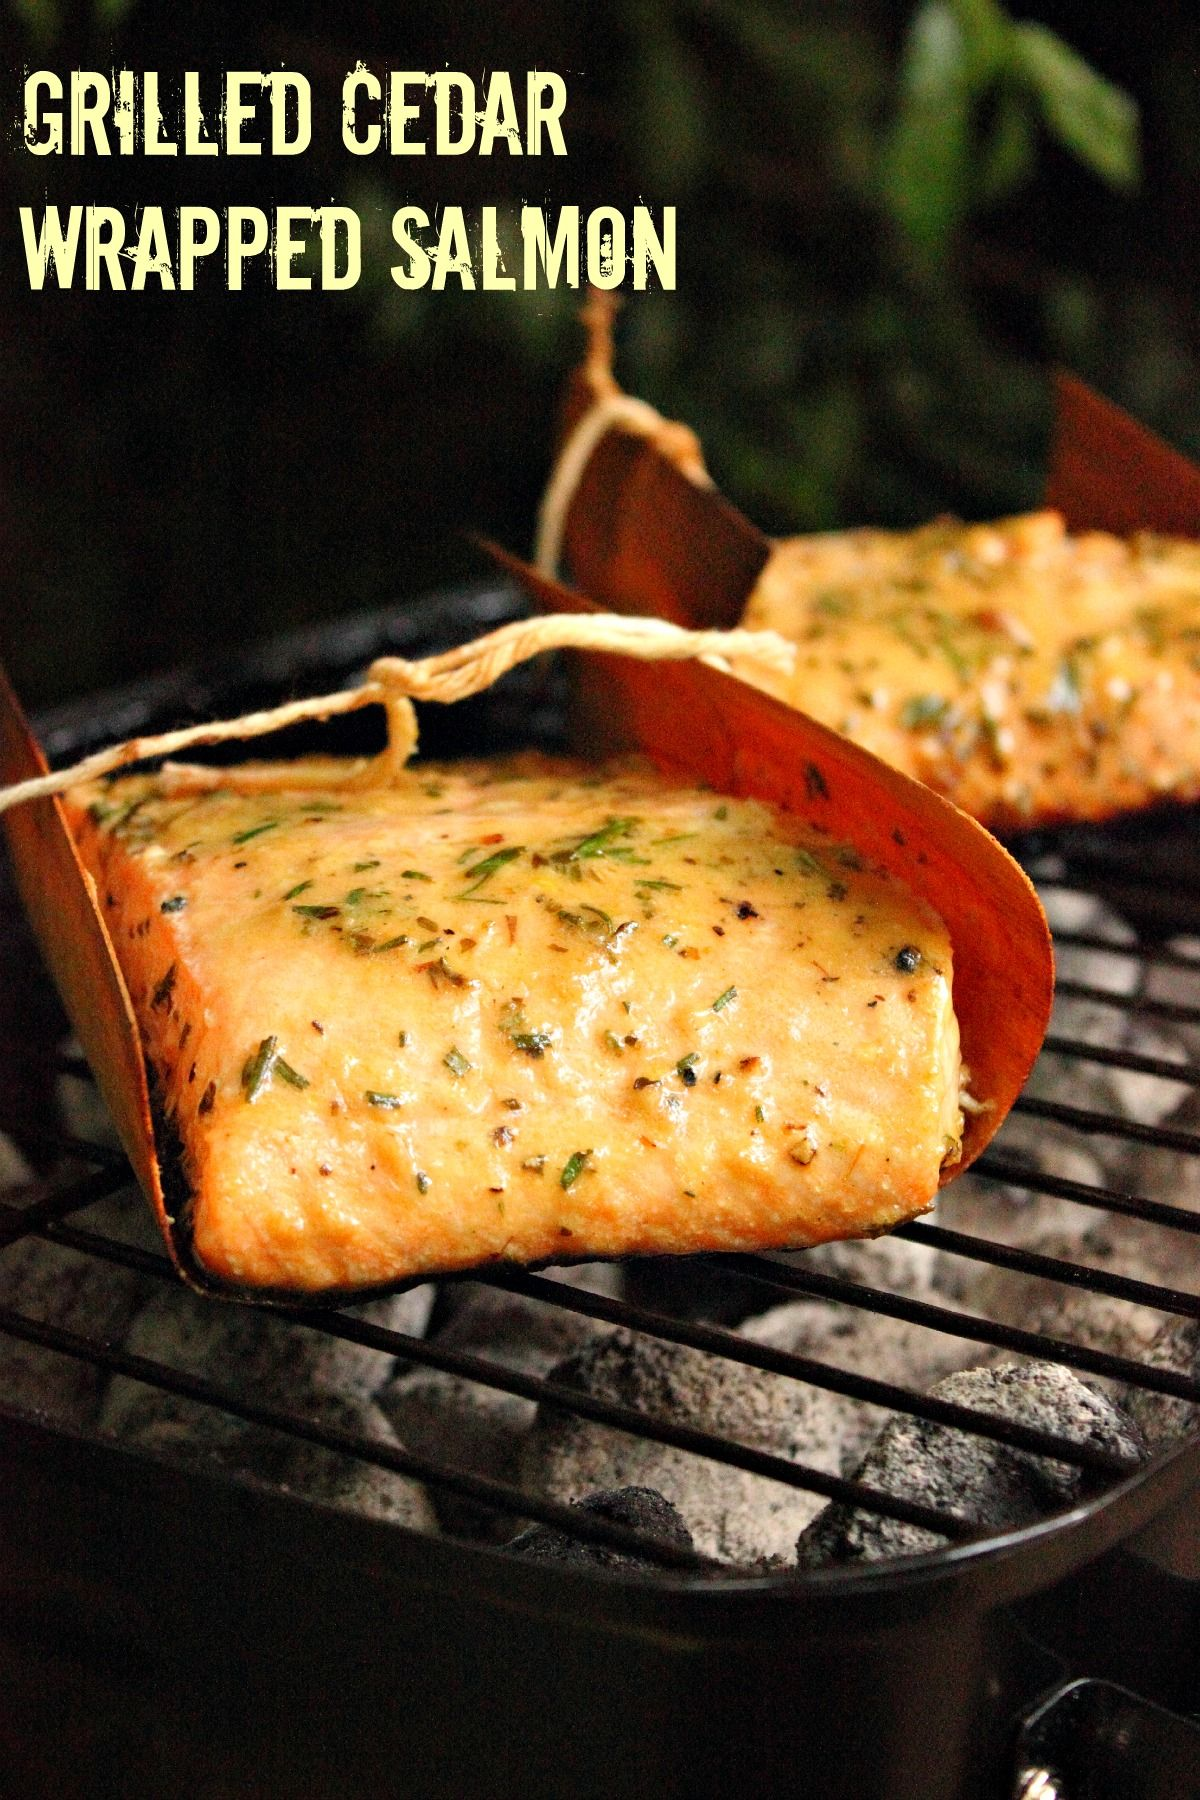 Of course you can grill your salmon on a cedar plank, but you can also wrap them in cedar wraps. Grilled Cedar Wrapped Salmon is the way to go!